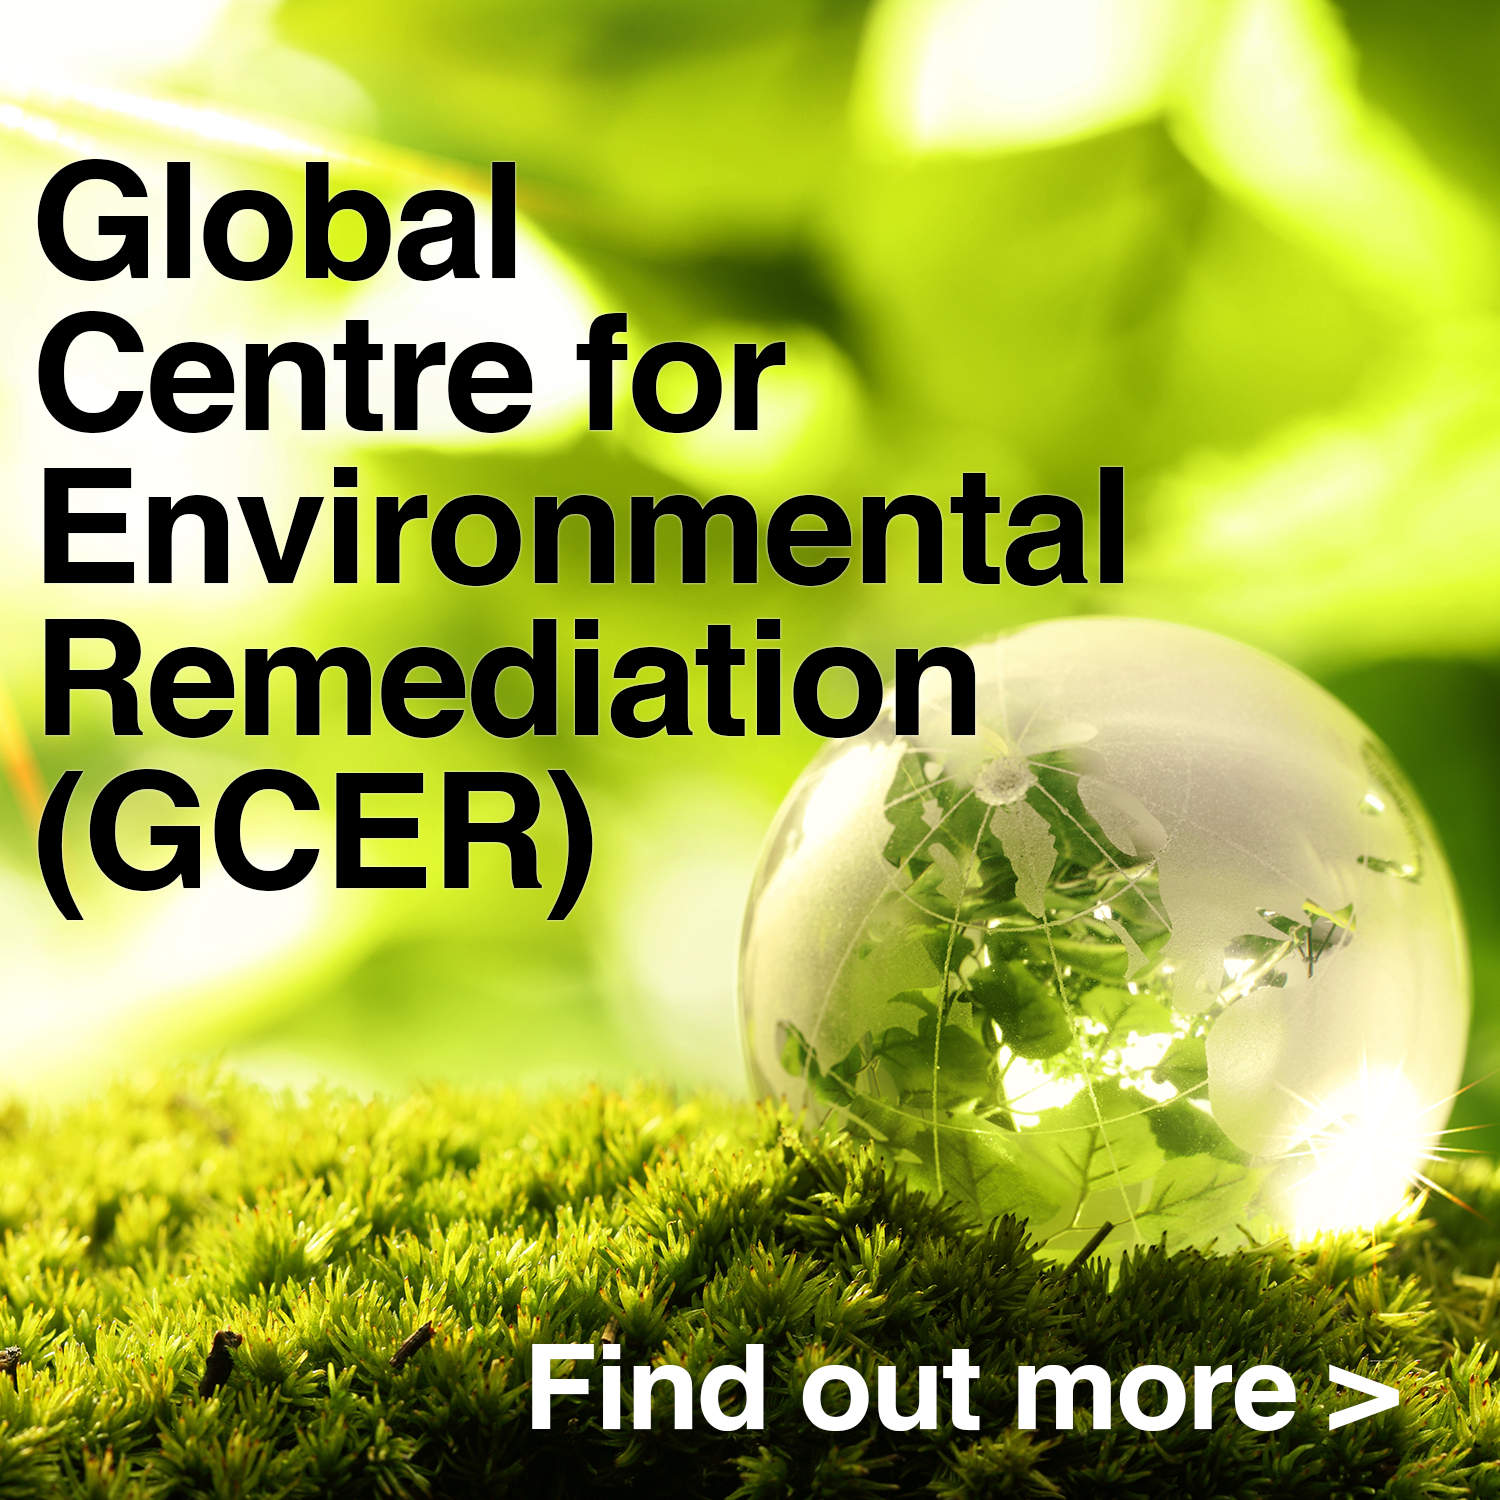 Global Centre for Environmental Remediation